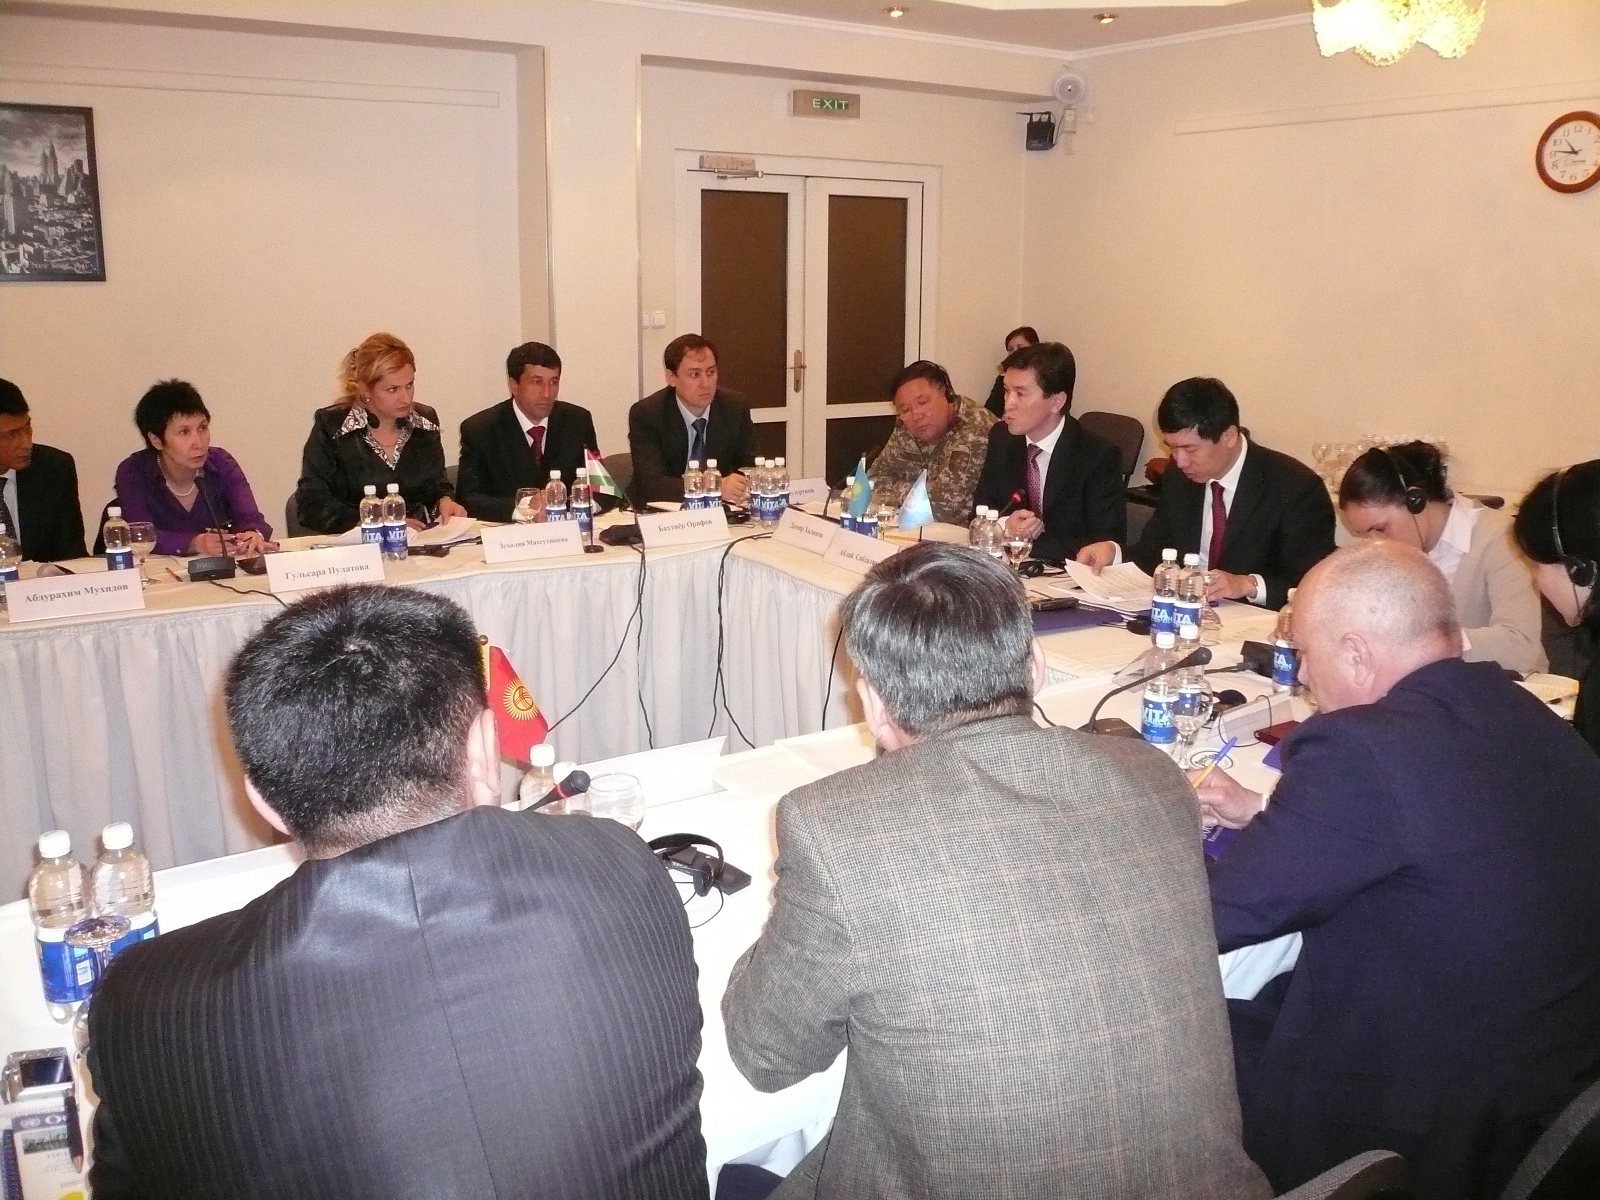 http://www.adrc.asia/adrcreport_j/items/Central_Asia.JPG